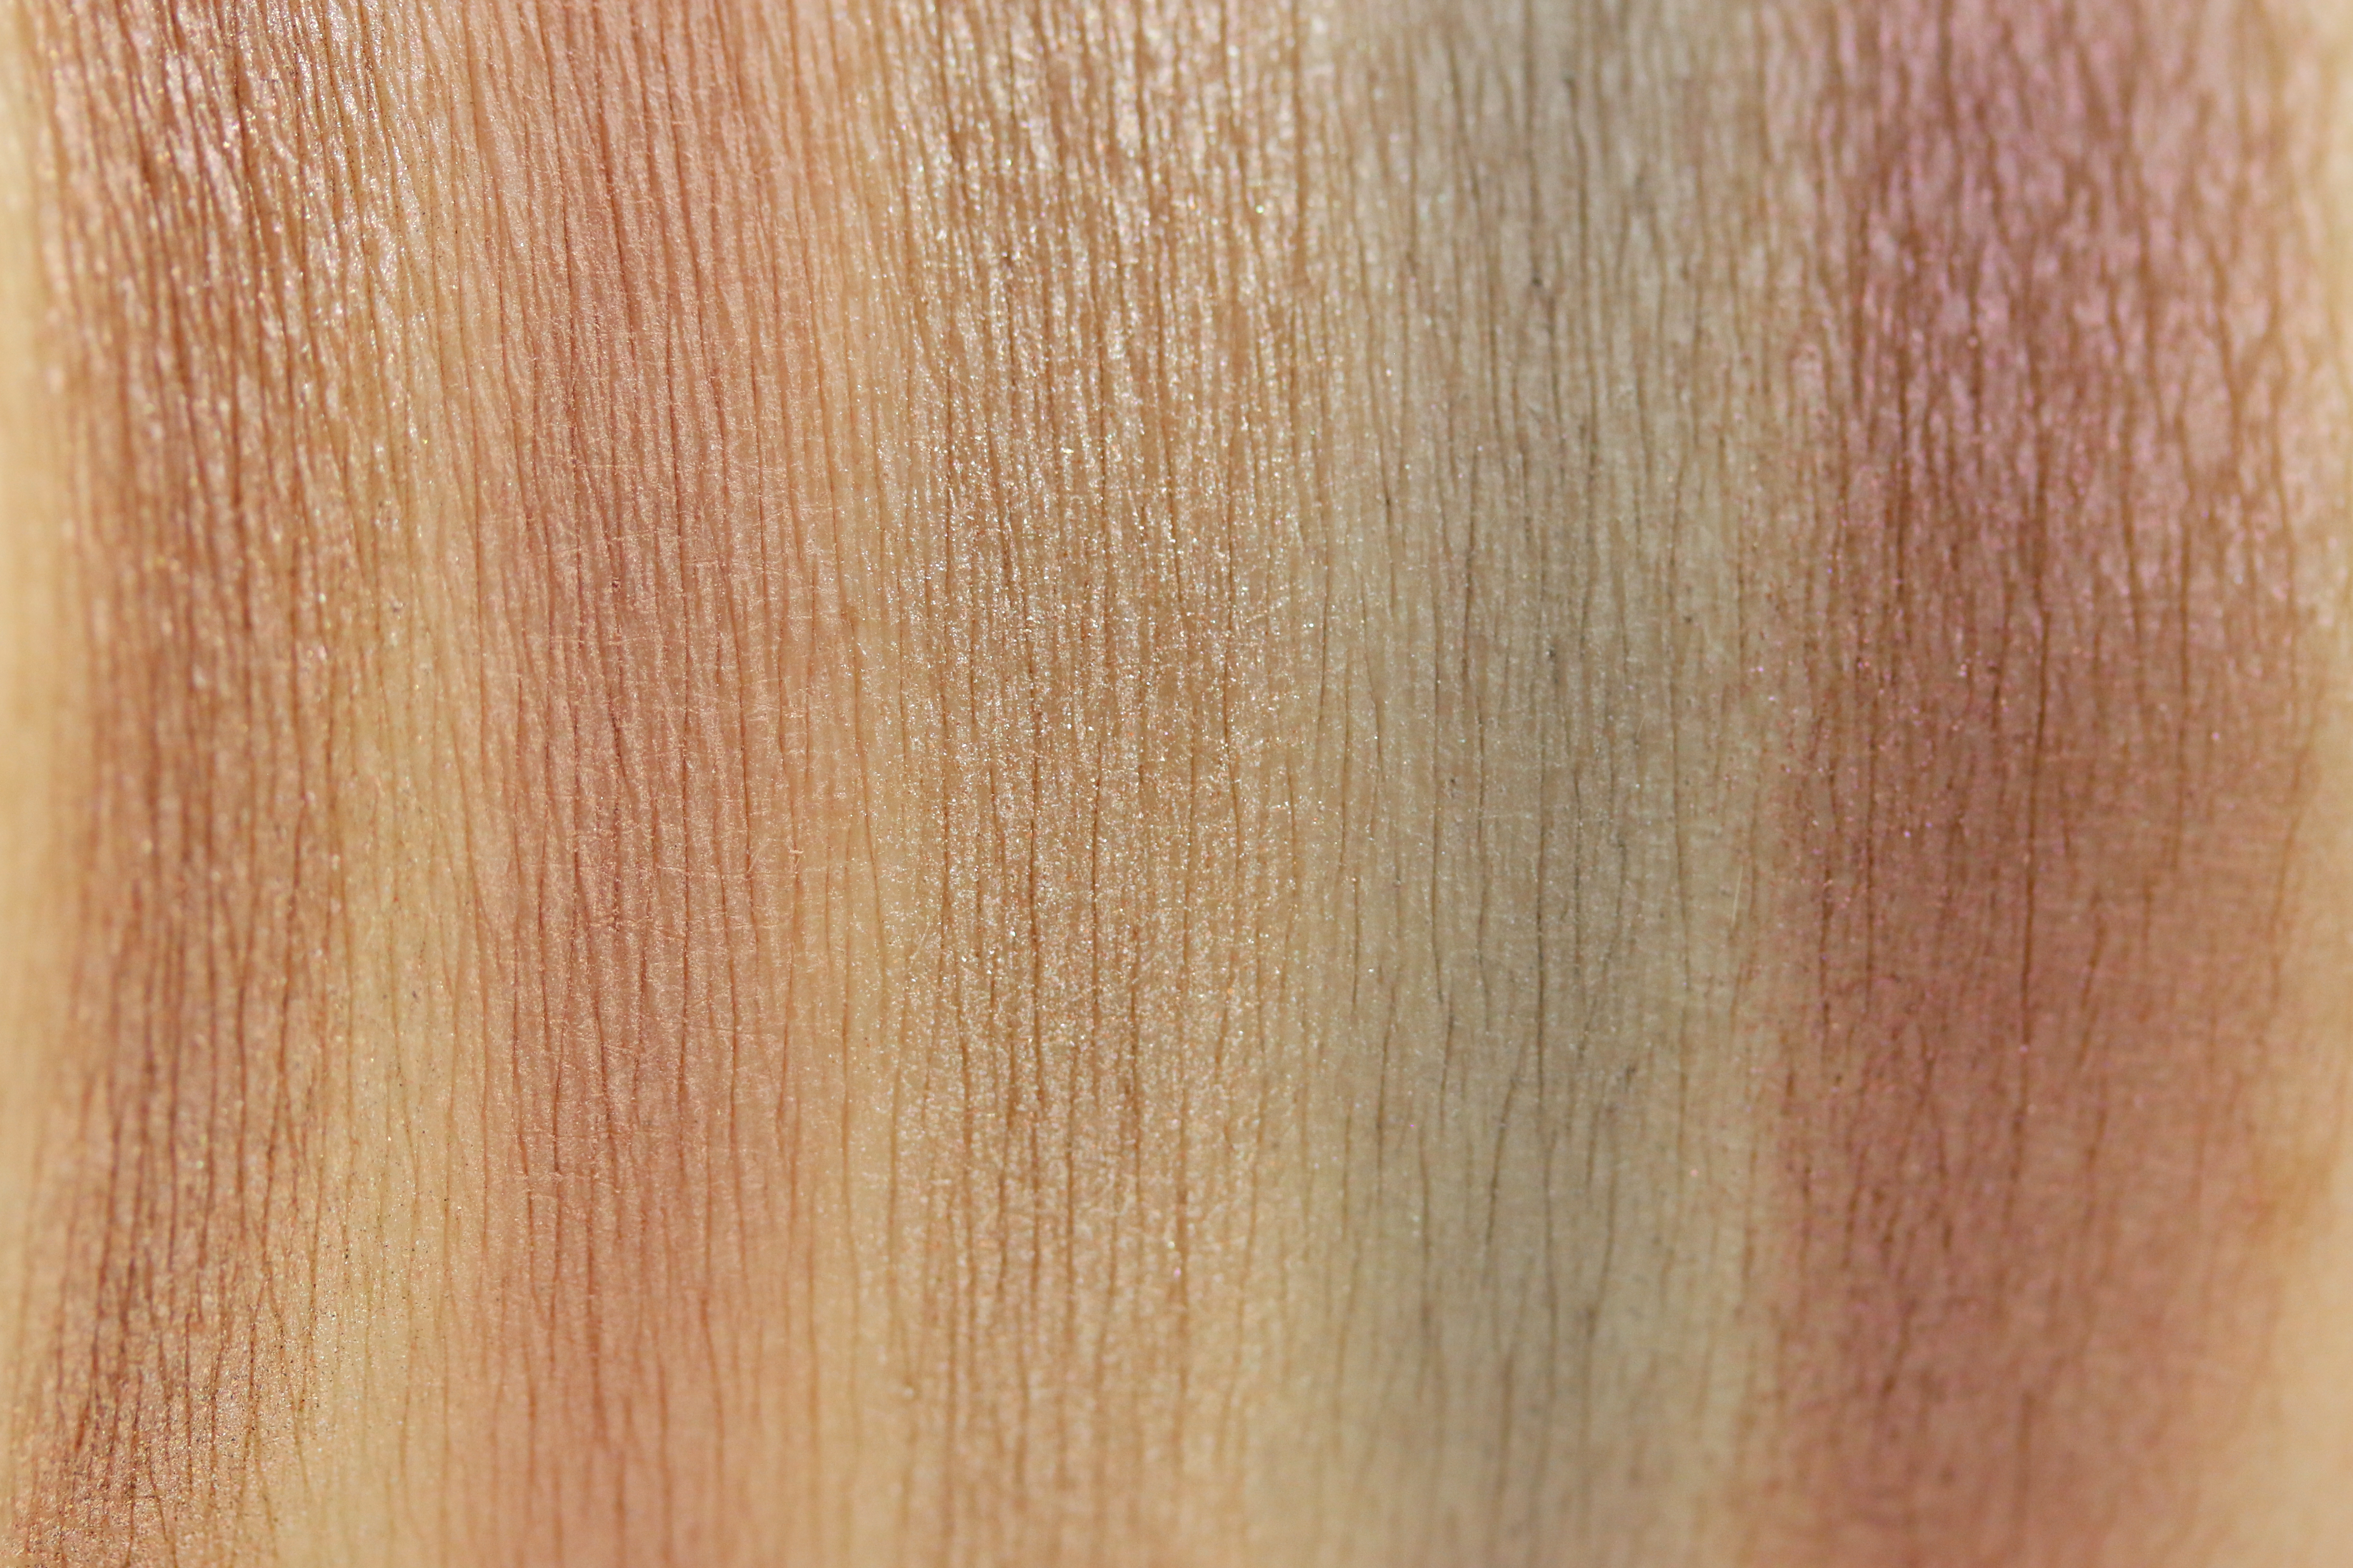 Loreal La Palette Nude Rose Swatches 1